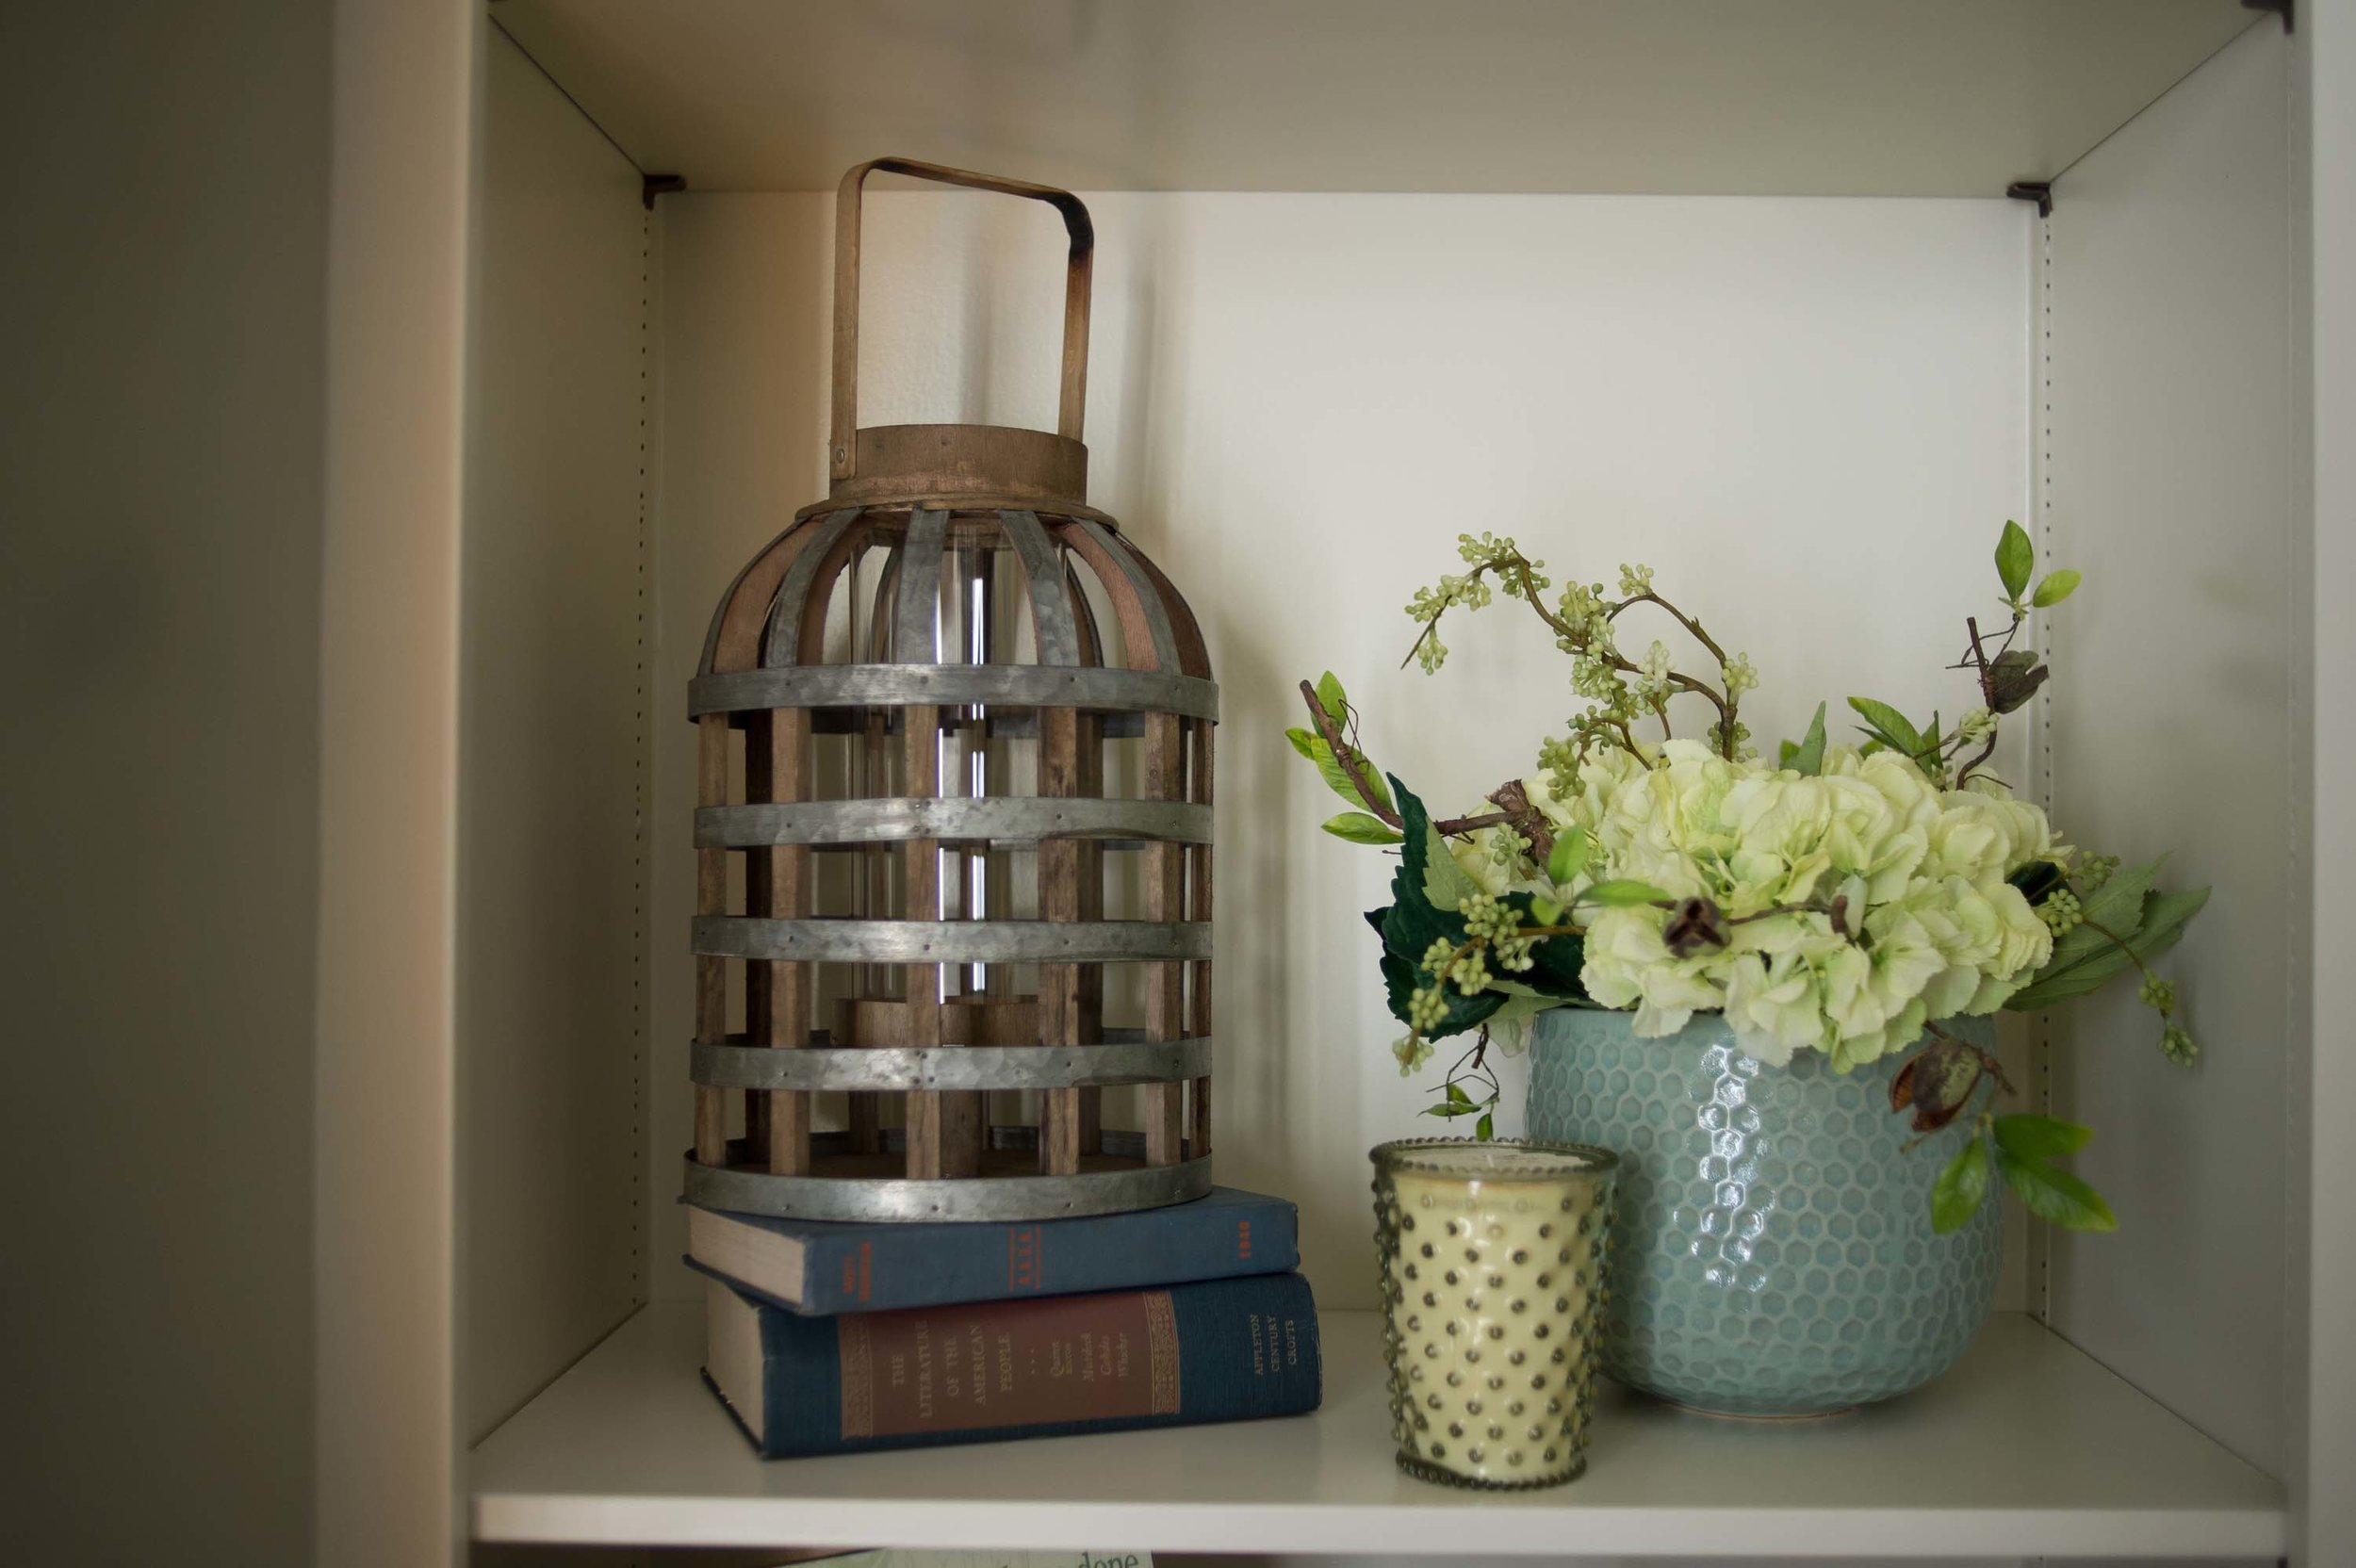 Shelf with books, lantern, candle and flowers on a vase